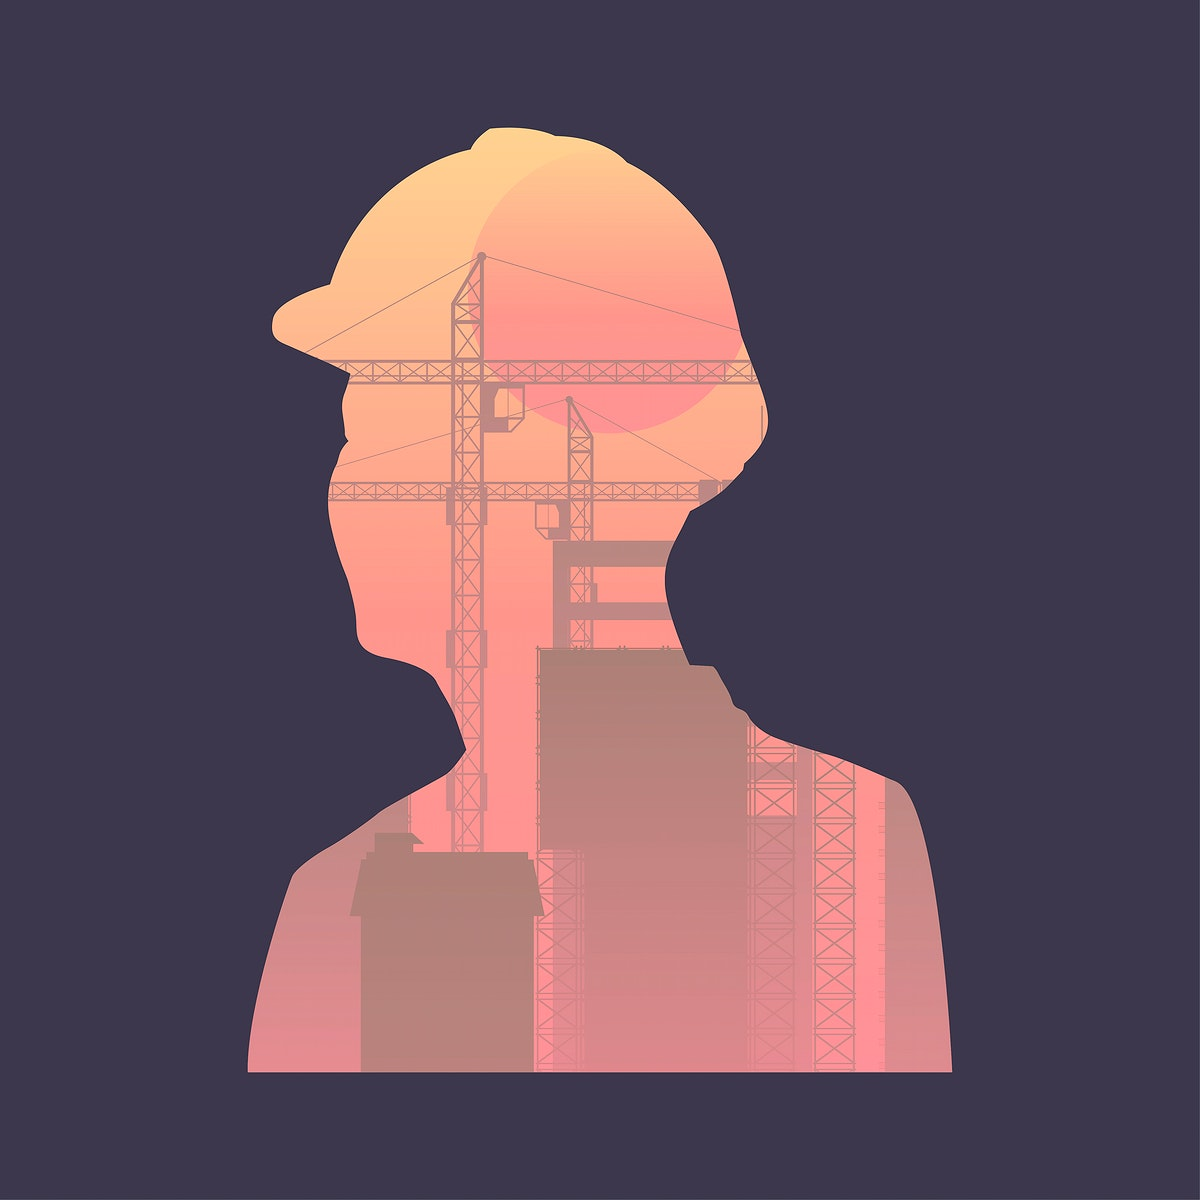 Construction site in man shape shadow graphic illustration